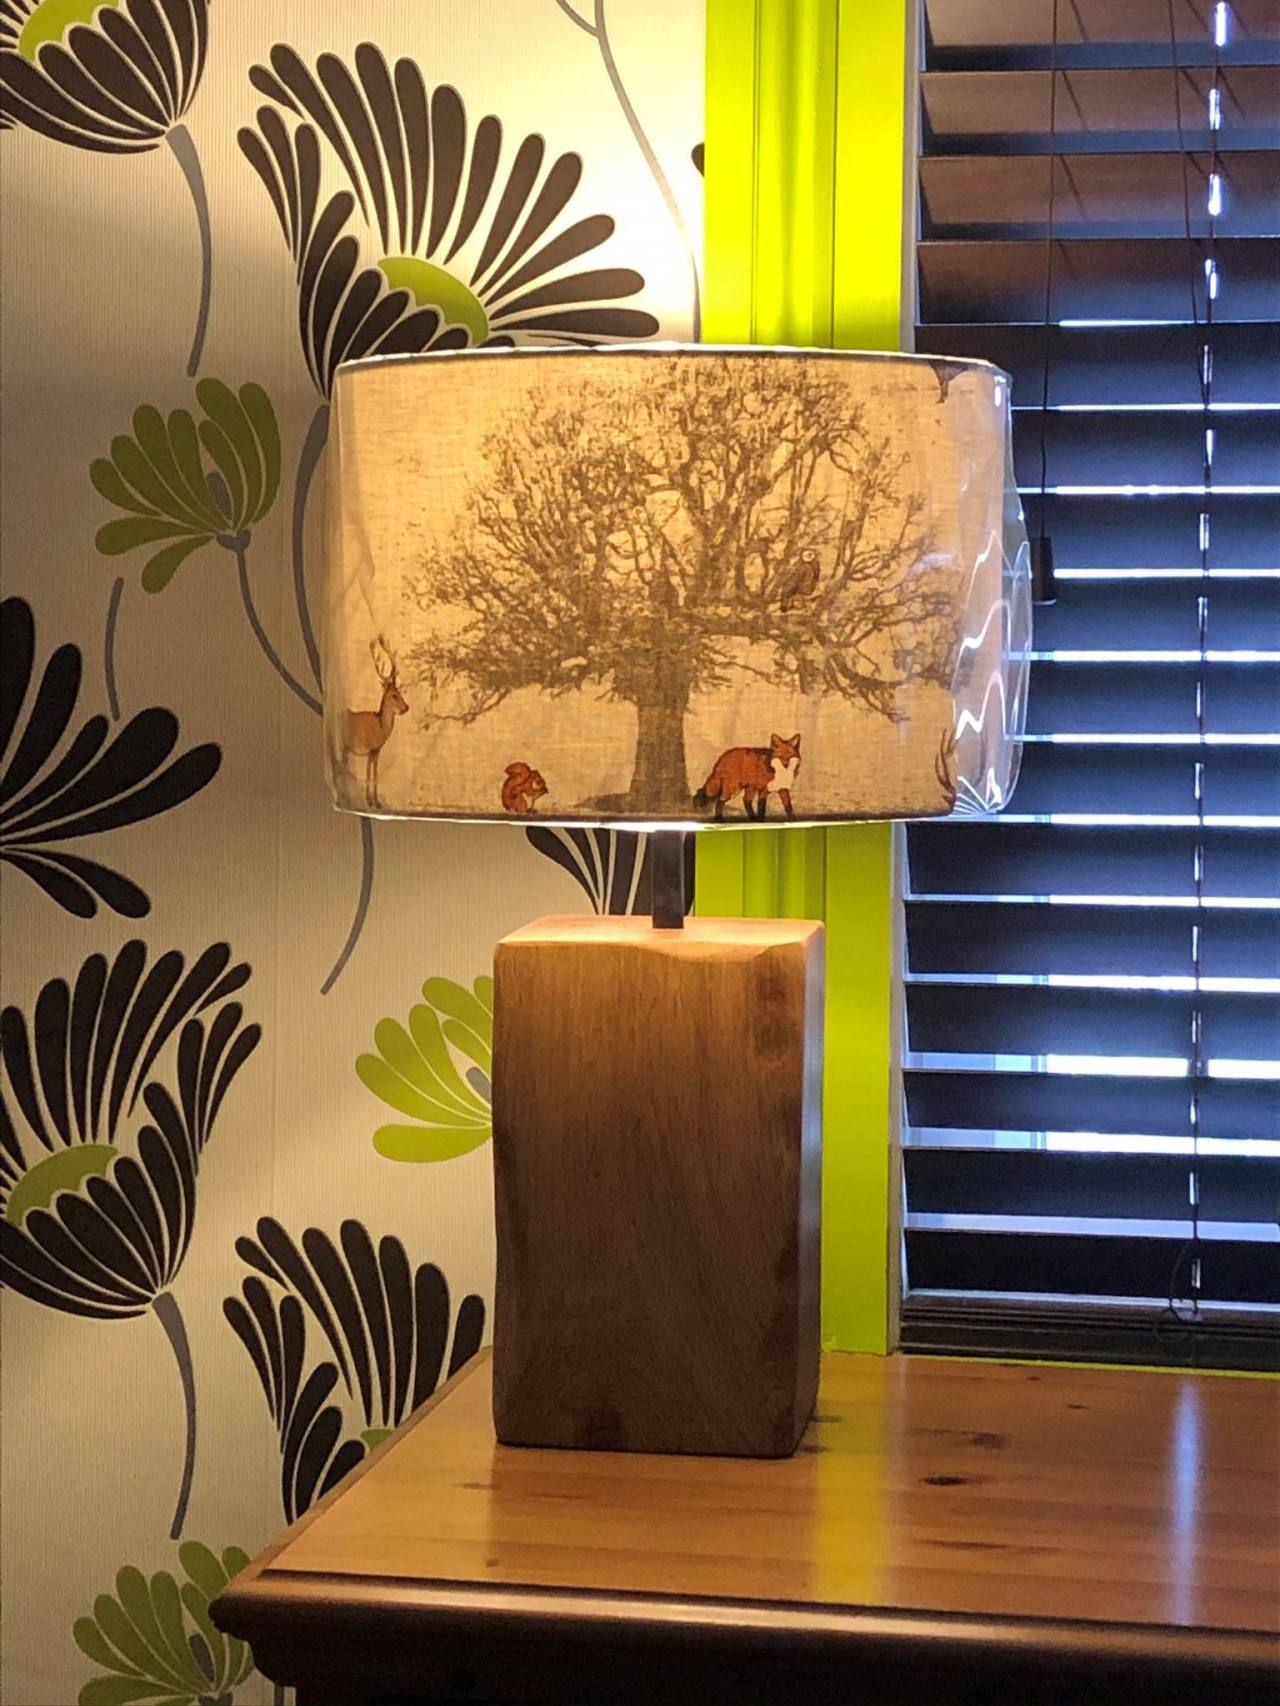 Image for: Oak Lamp